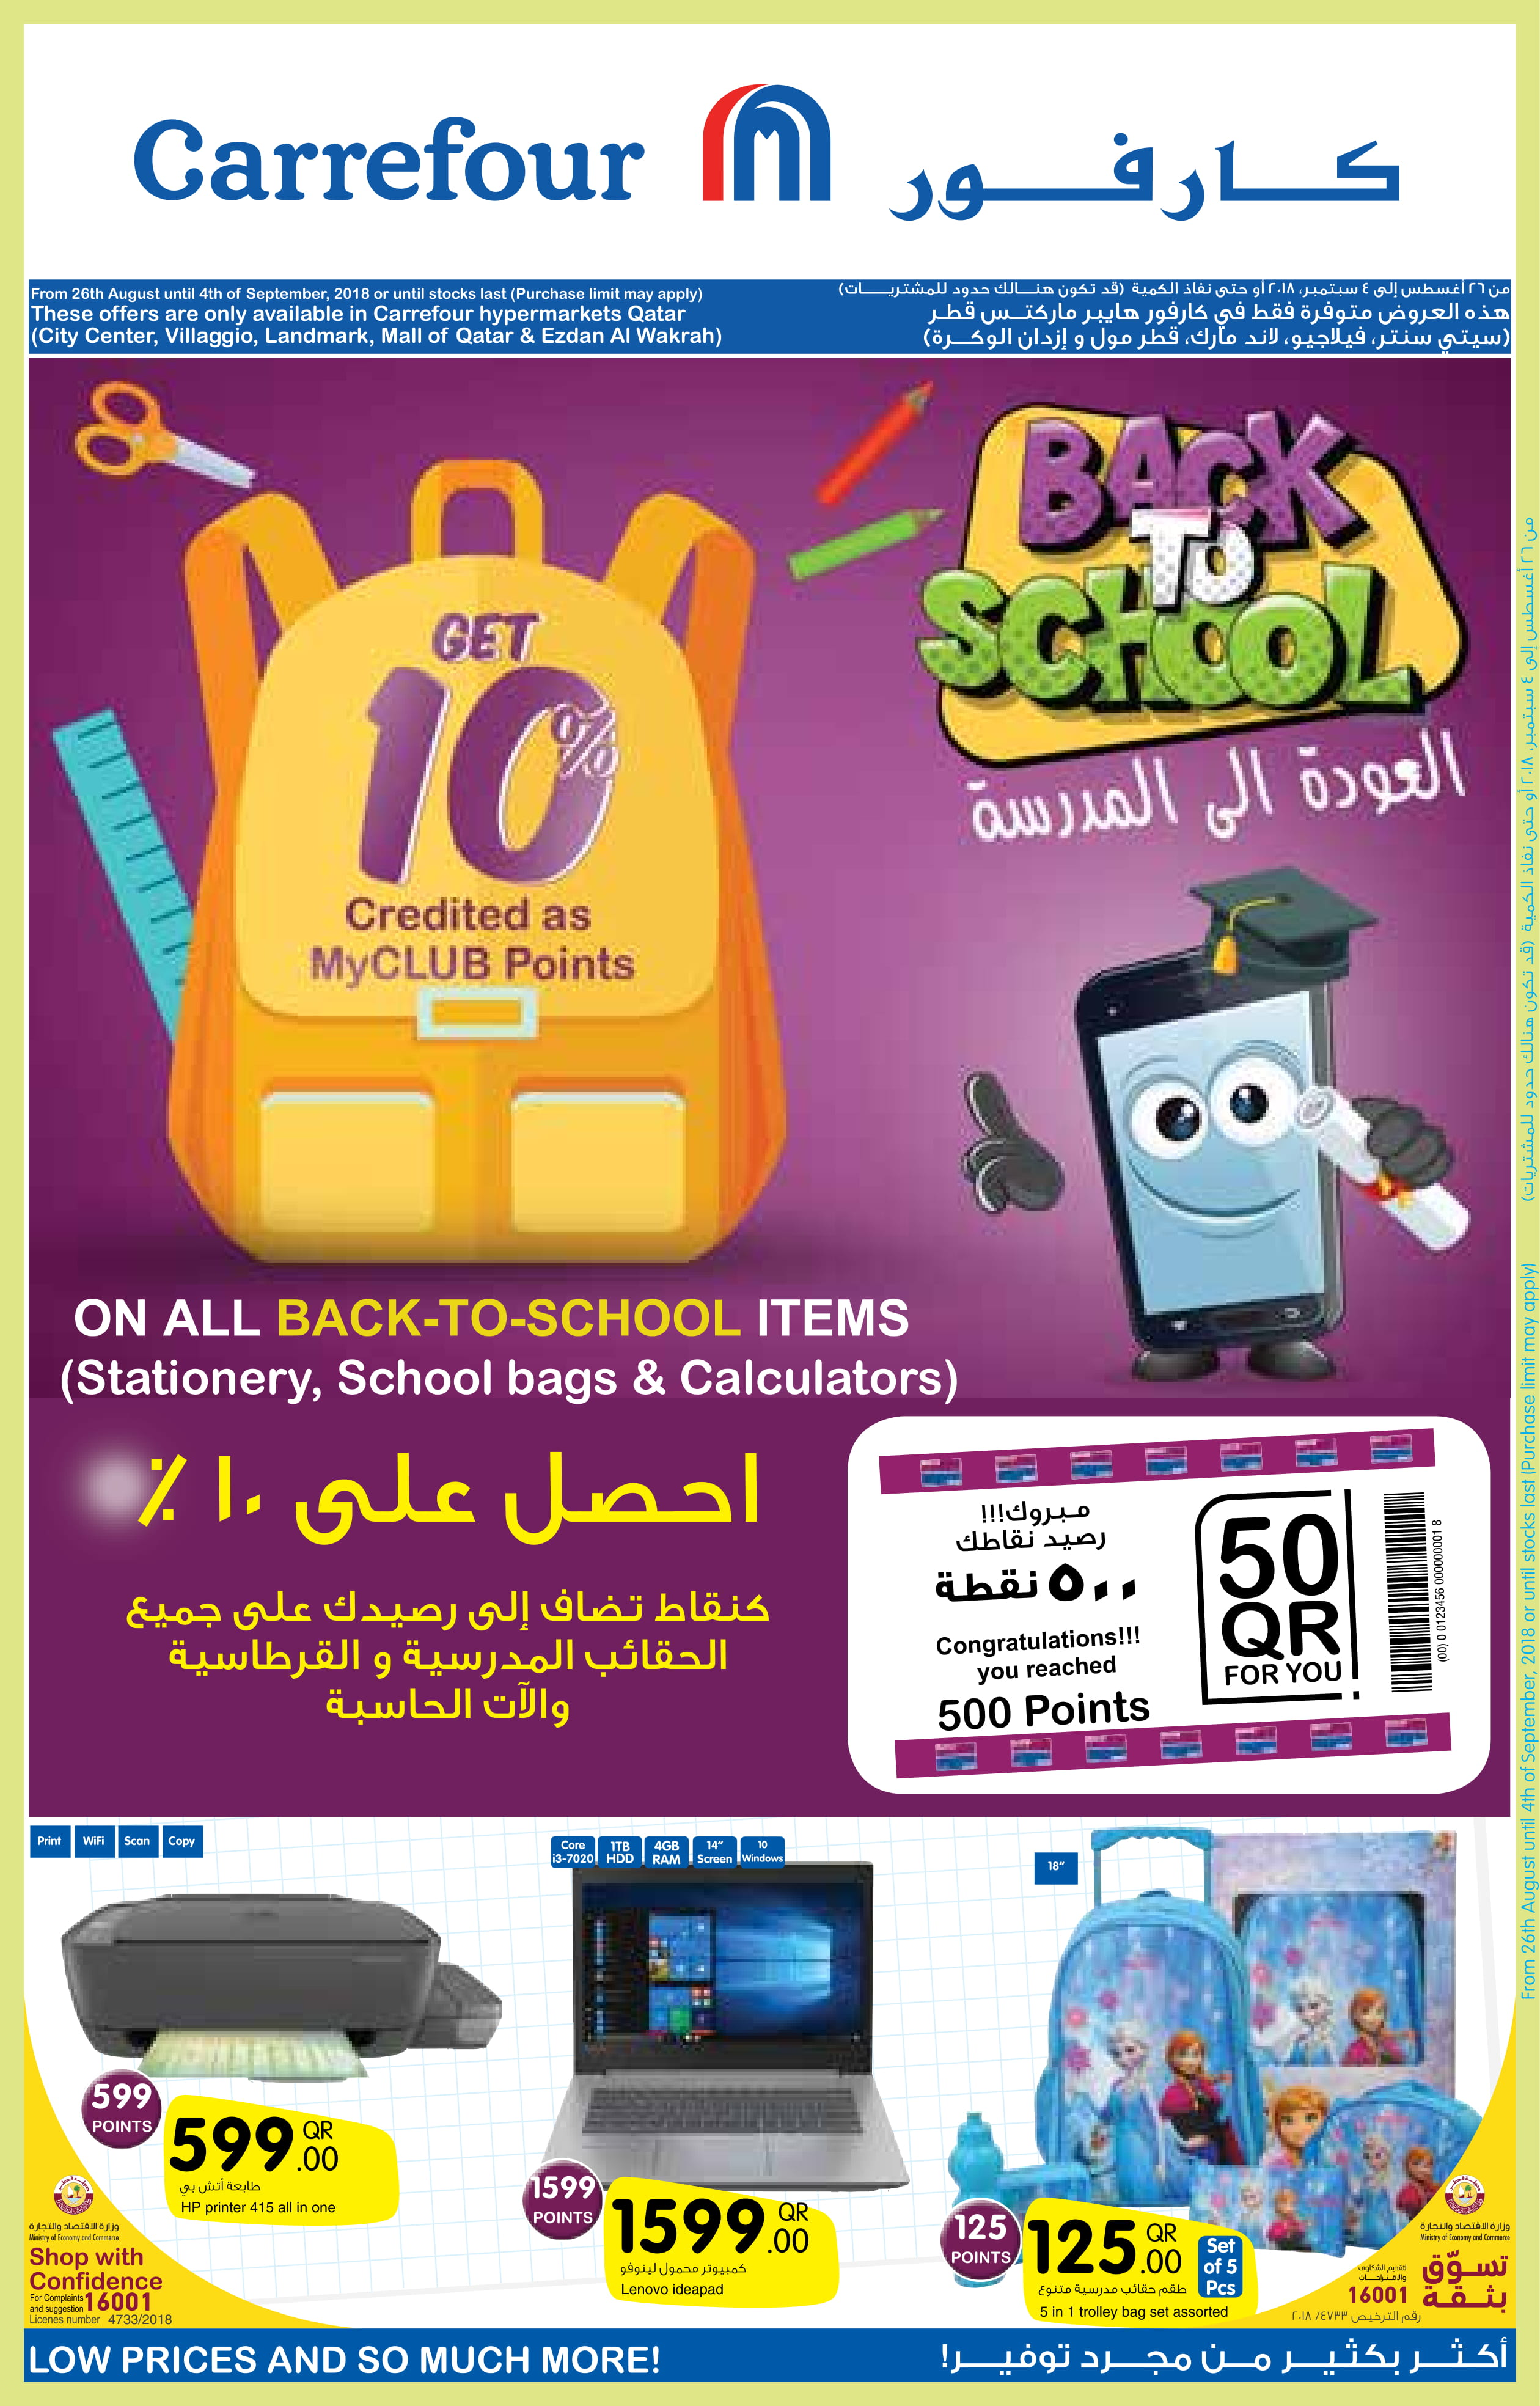 Carrefour Back to School Offers Until 04-09-2018-125